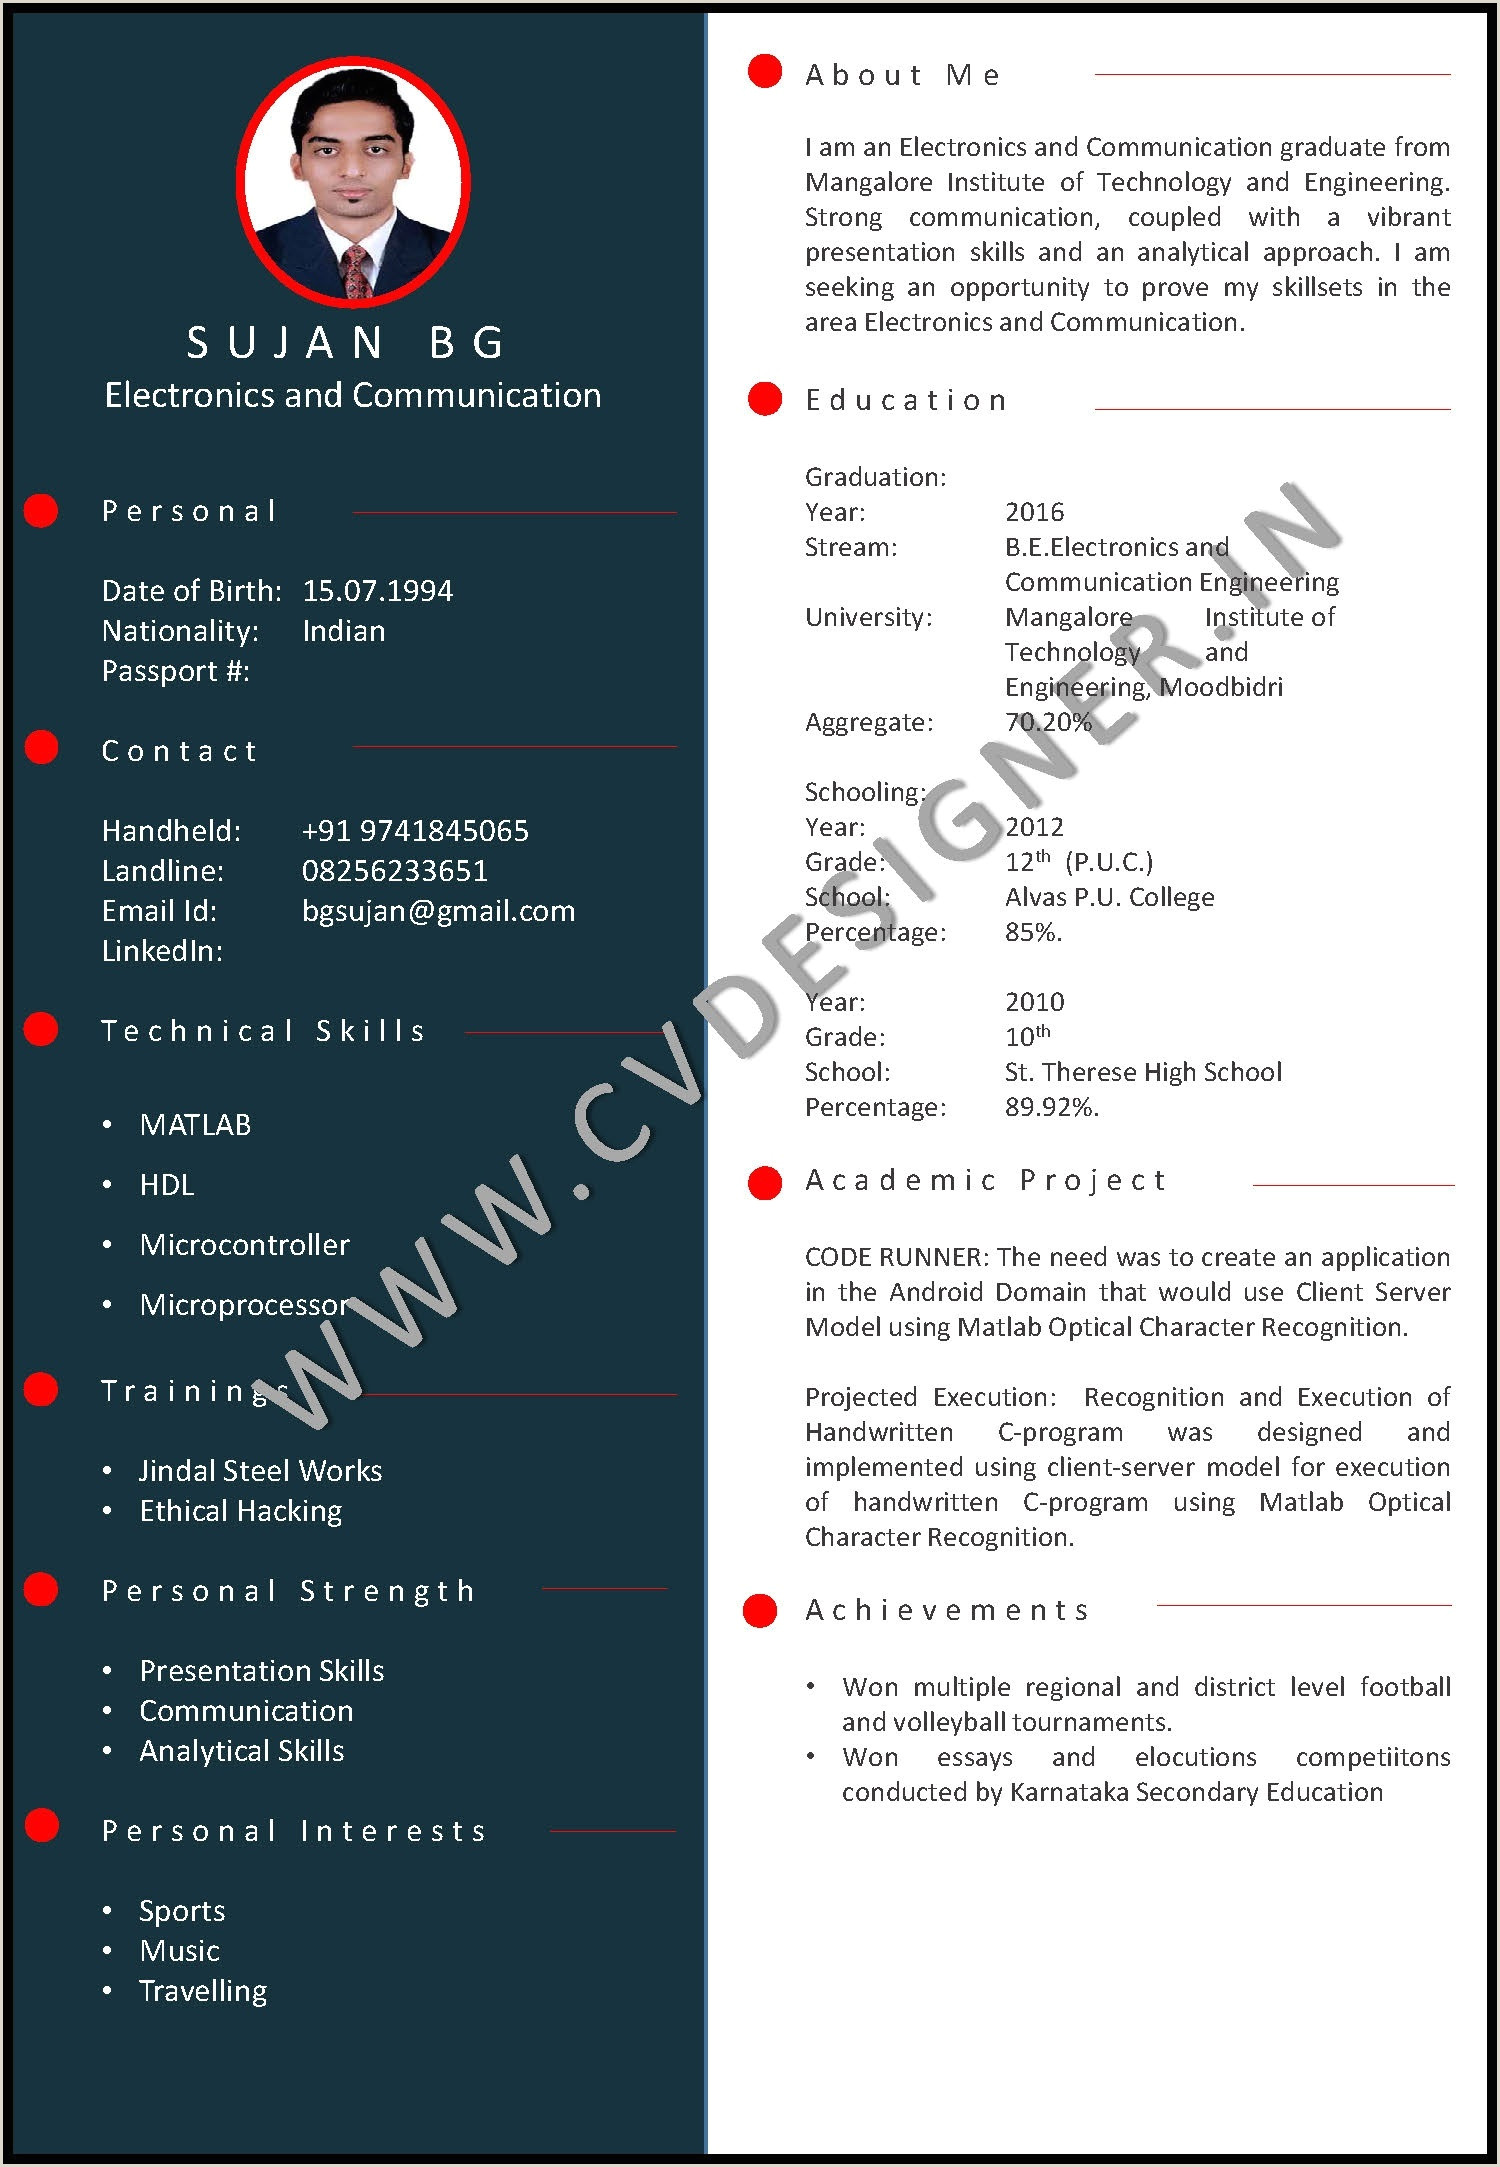 Fresher Resume format In Usa How to Make A Good Resume as A Fresher Quora